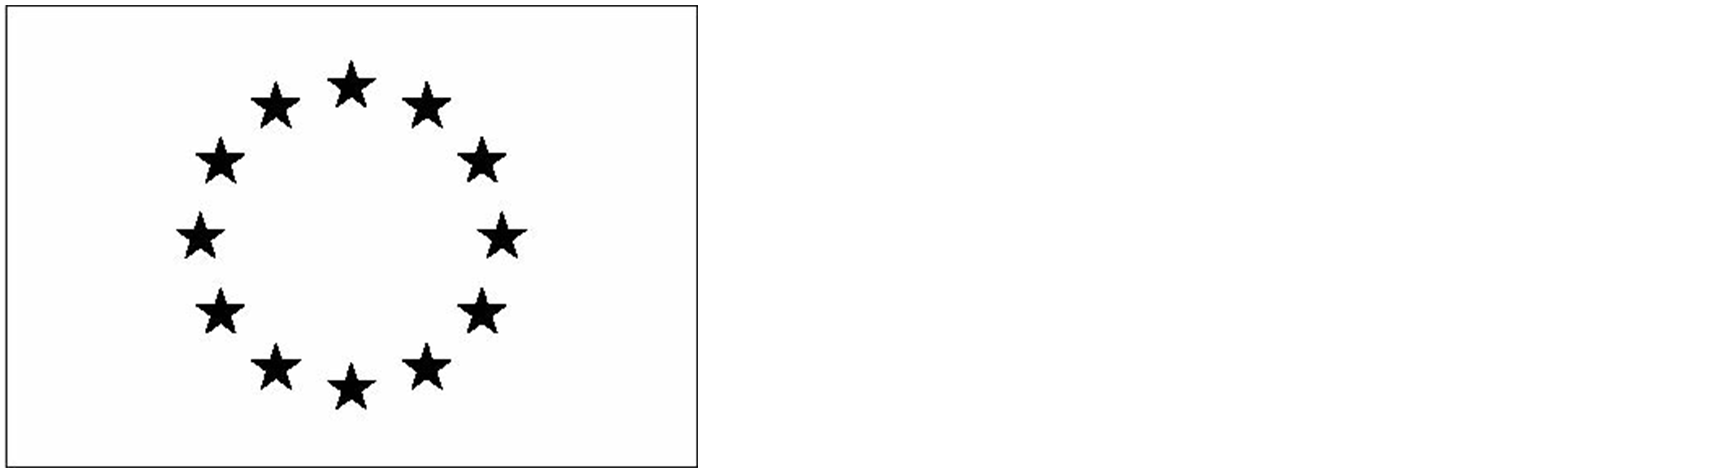 Co-Funded_by_the_EU_logo_BW.png